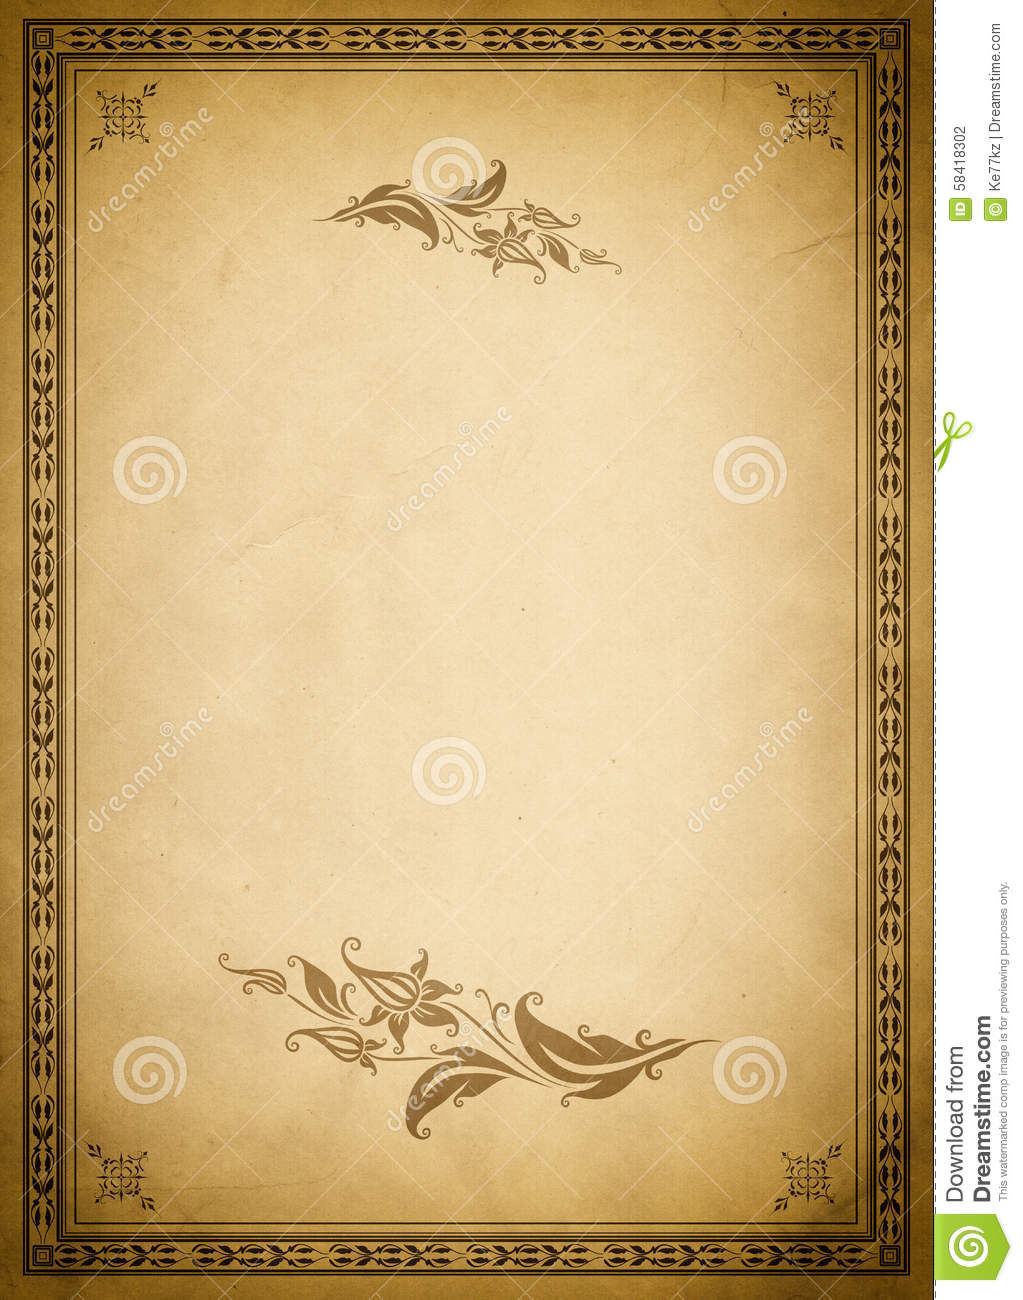 Old Paper Backdrop And Old-fashioned Border. Stock Photo ...